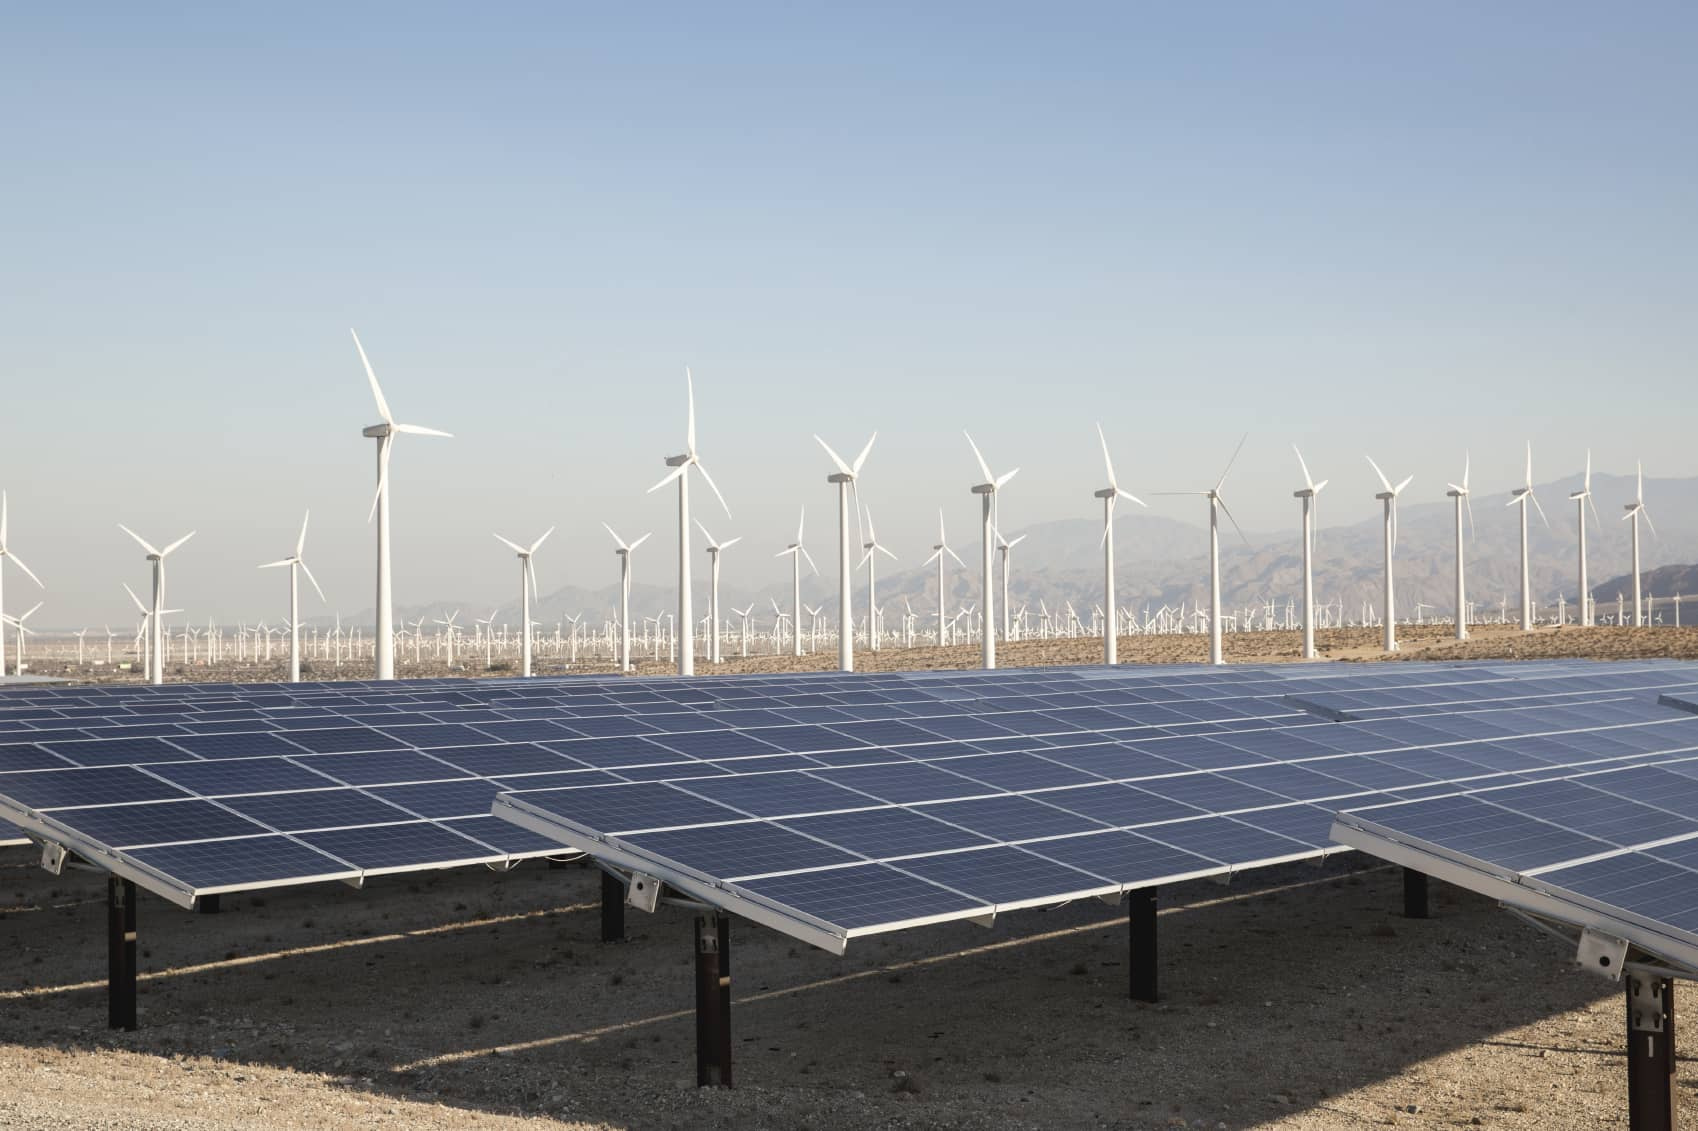 iStock_000074694629_Medium Report: U.S. Renewables Set Generation Records In Q1